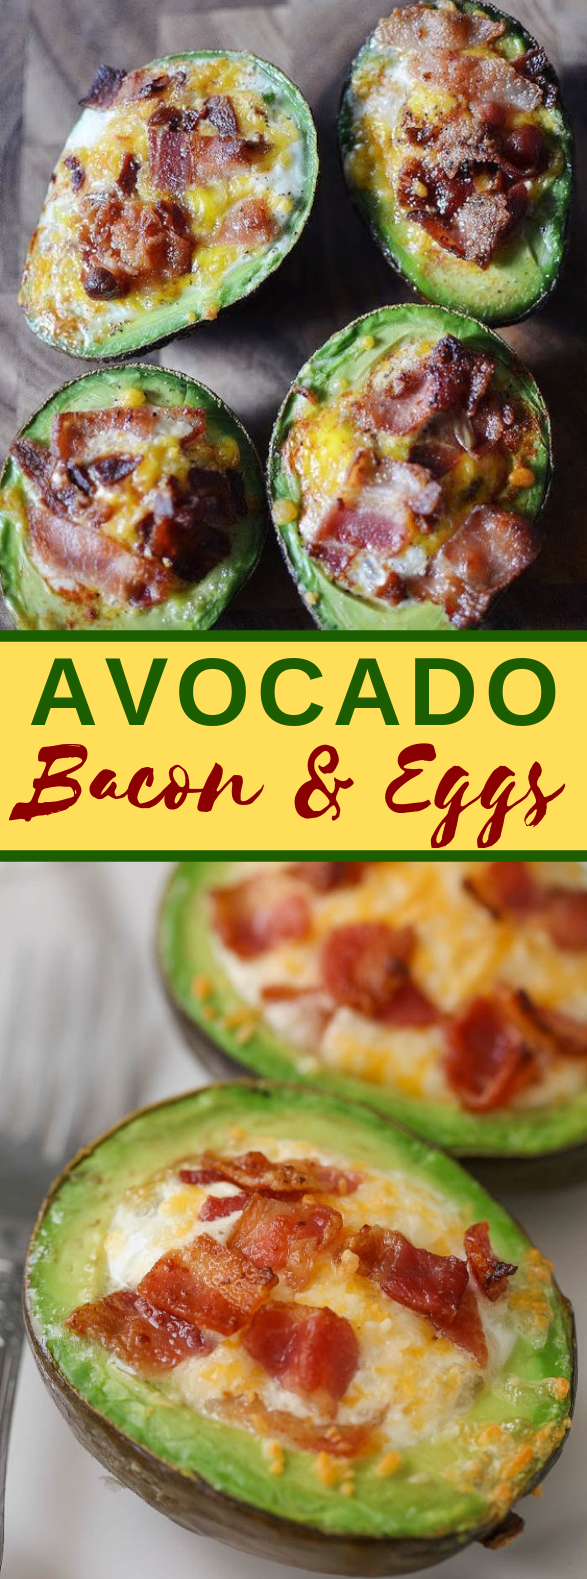 AVOCADO BACON AND EGGS #healthydiet #paleomeals